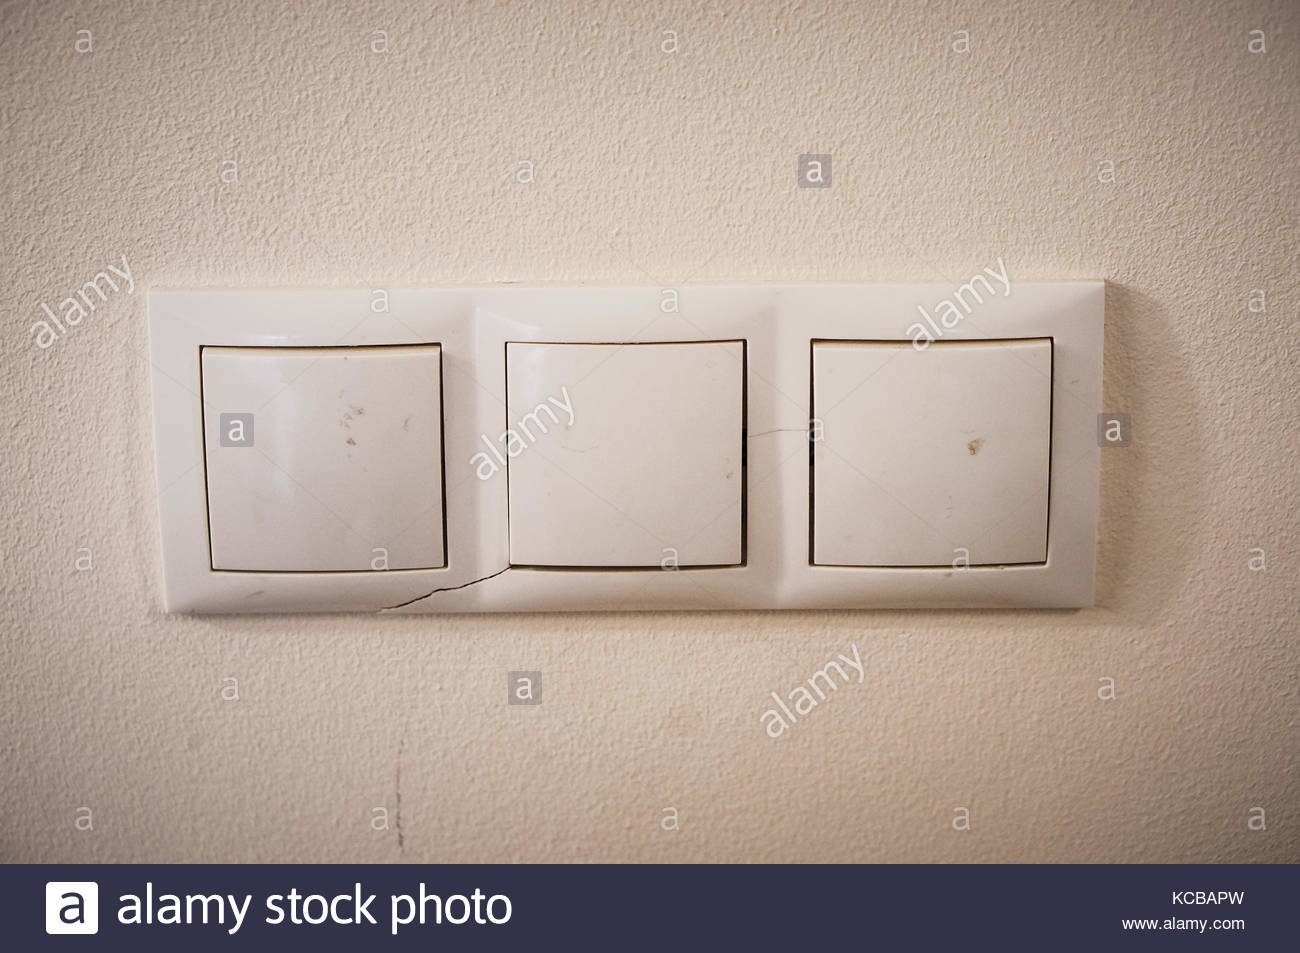 Old Light Switches Stockfotos & Old Light Switches Bilder - Alamy